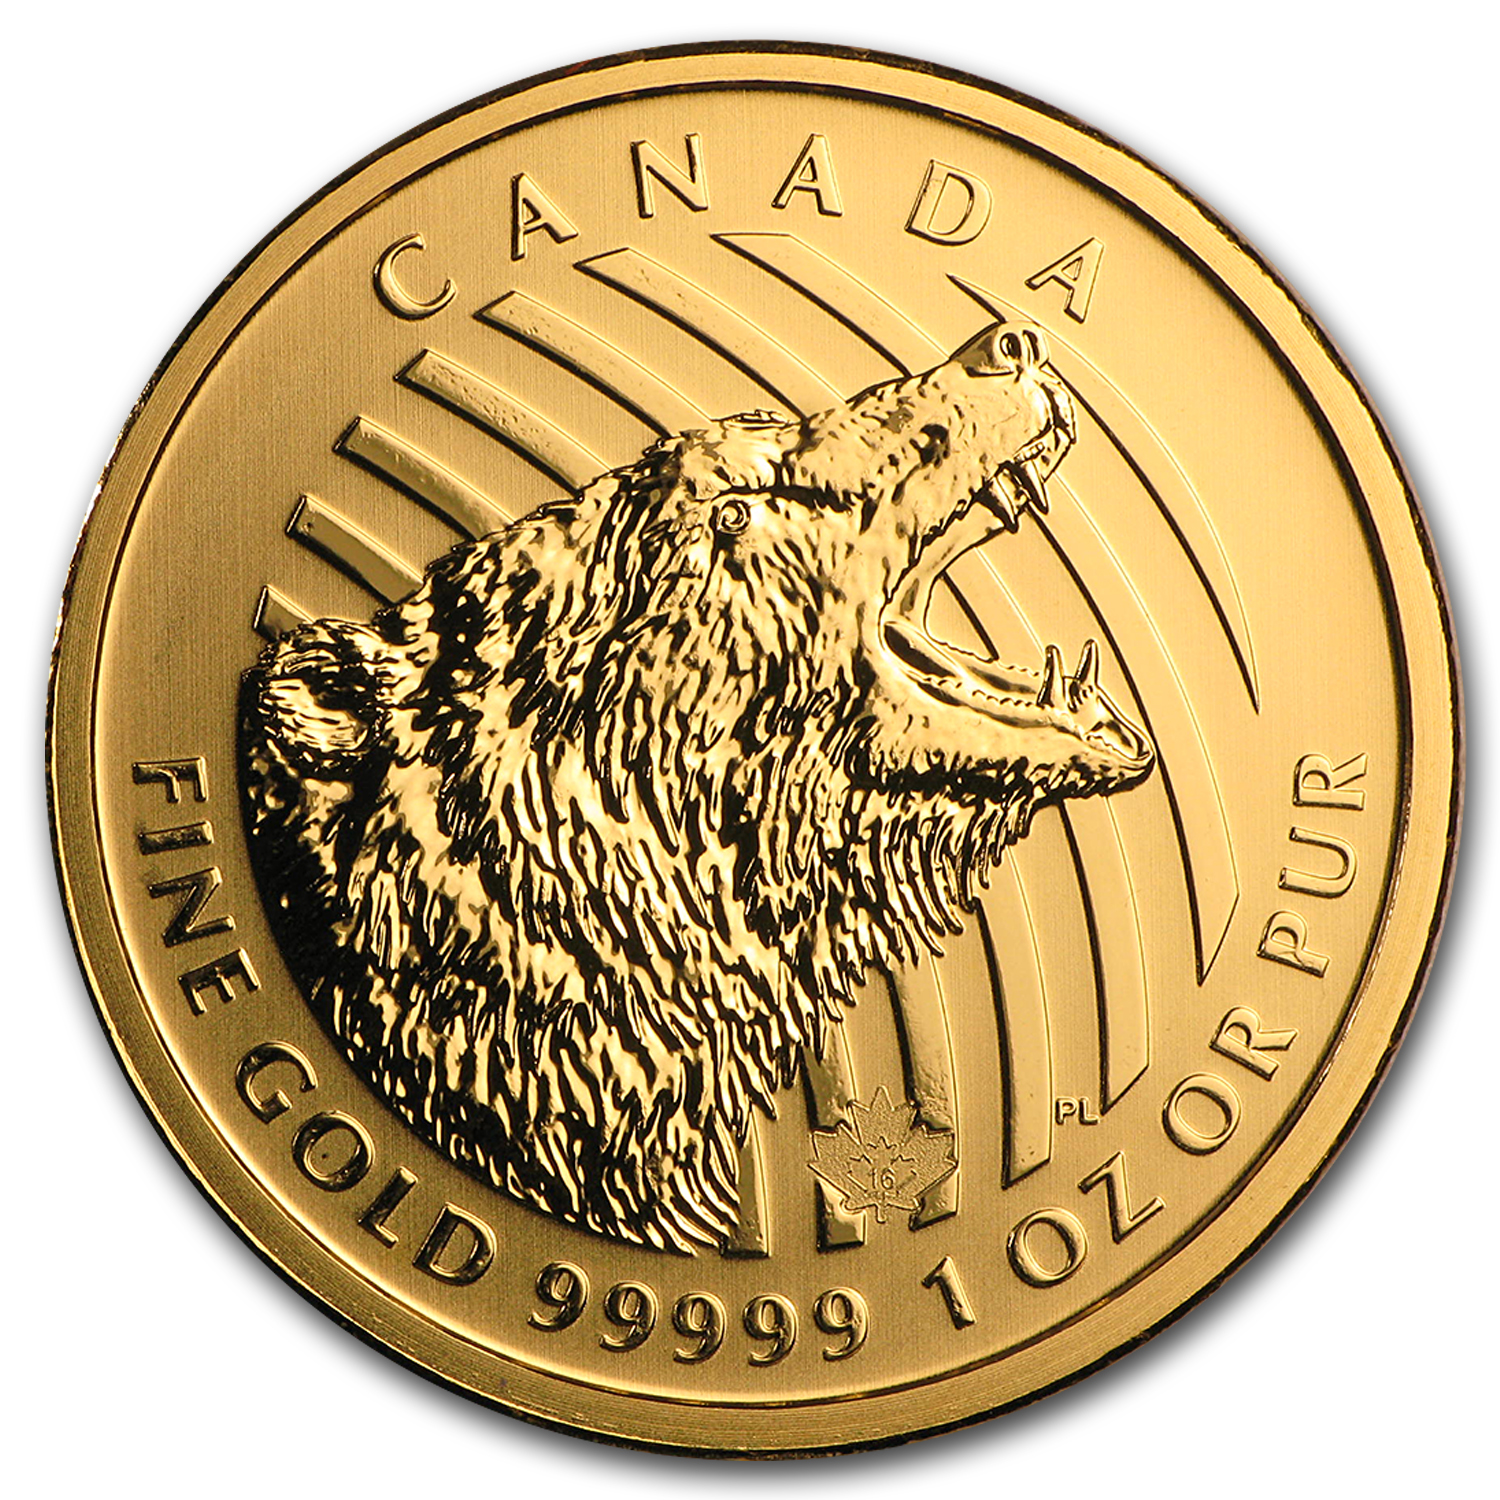 2016 Canada 1 oz Gold Grizzly .99999 BU (Dmgd/No Assay)